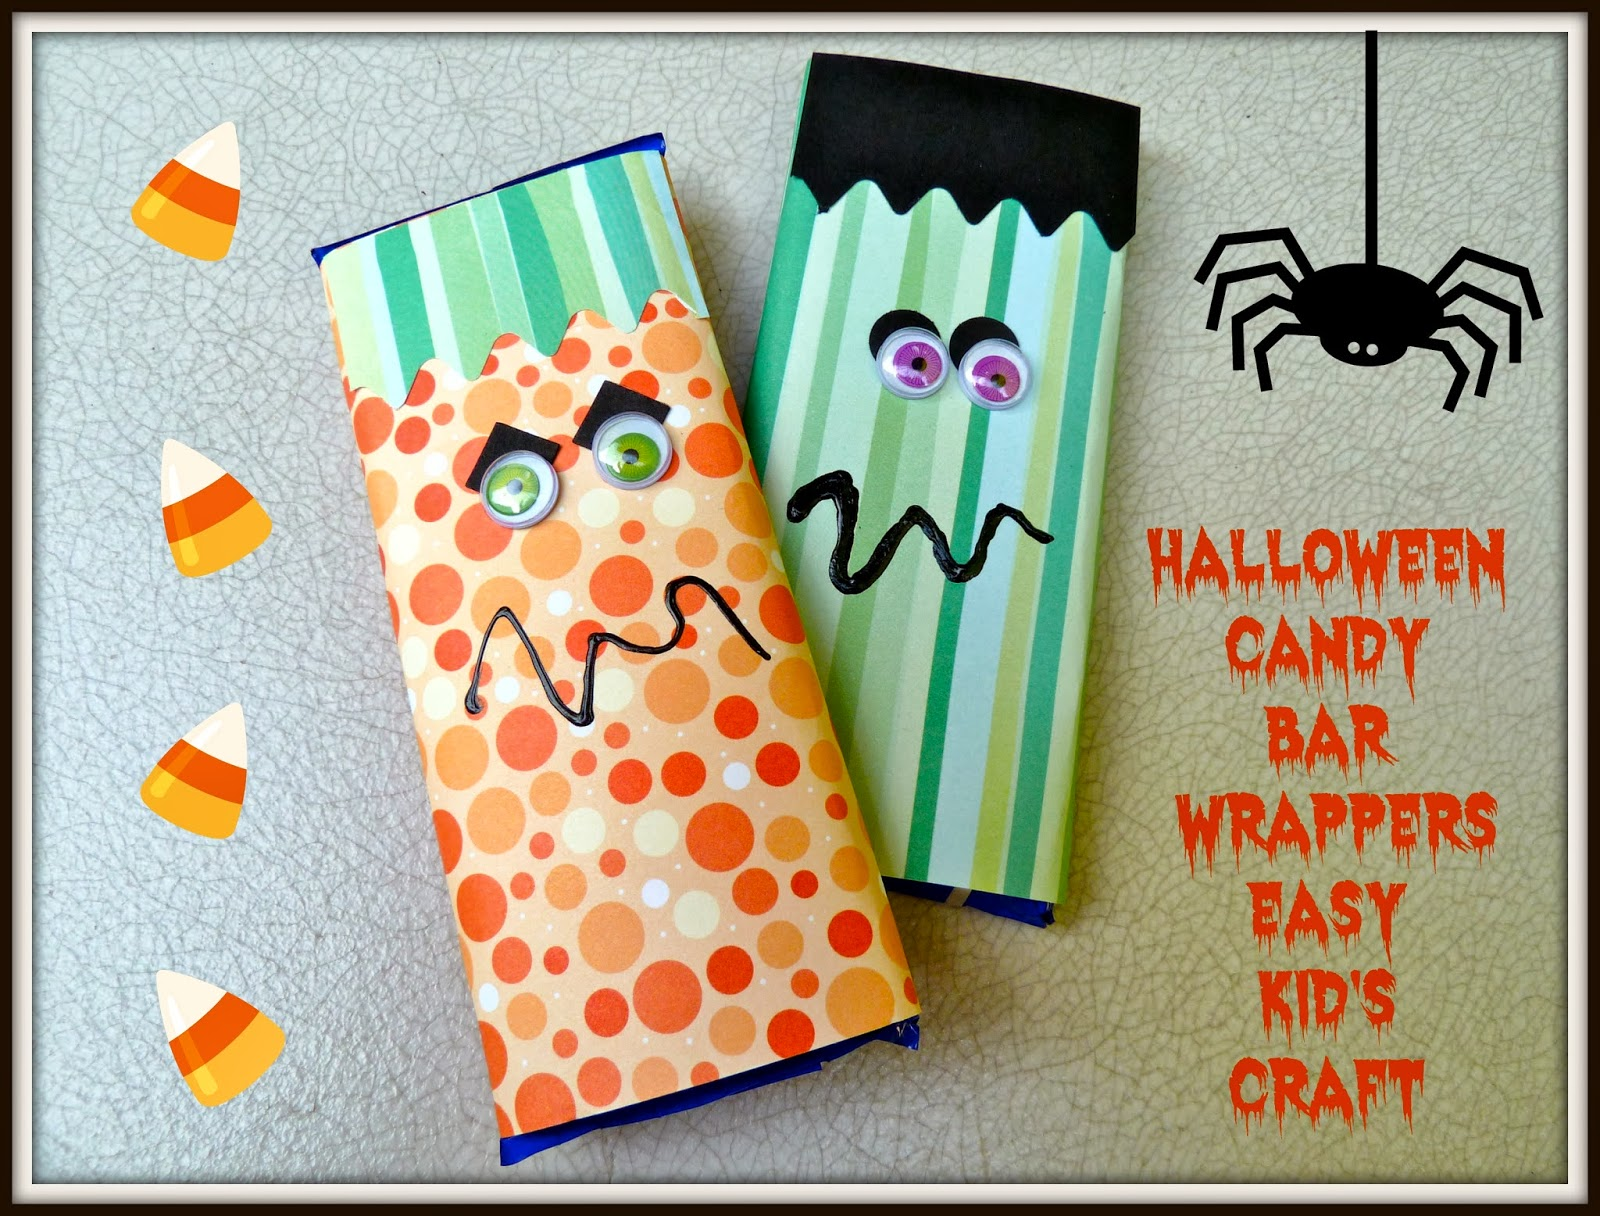 make it easy crafts: halloween candy bar wrappers | kid's craft